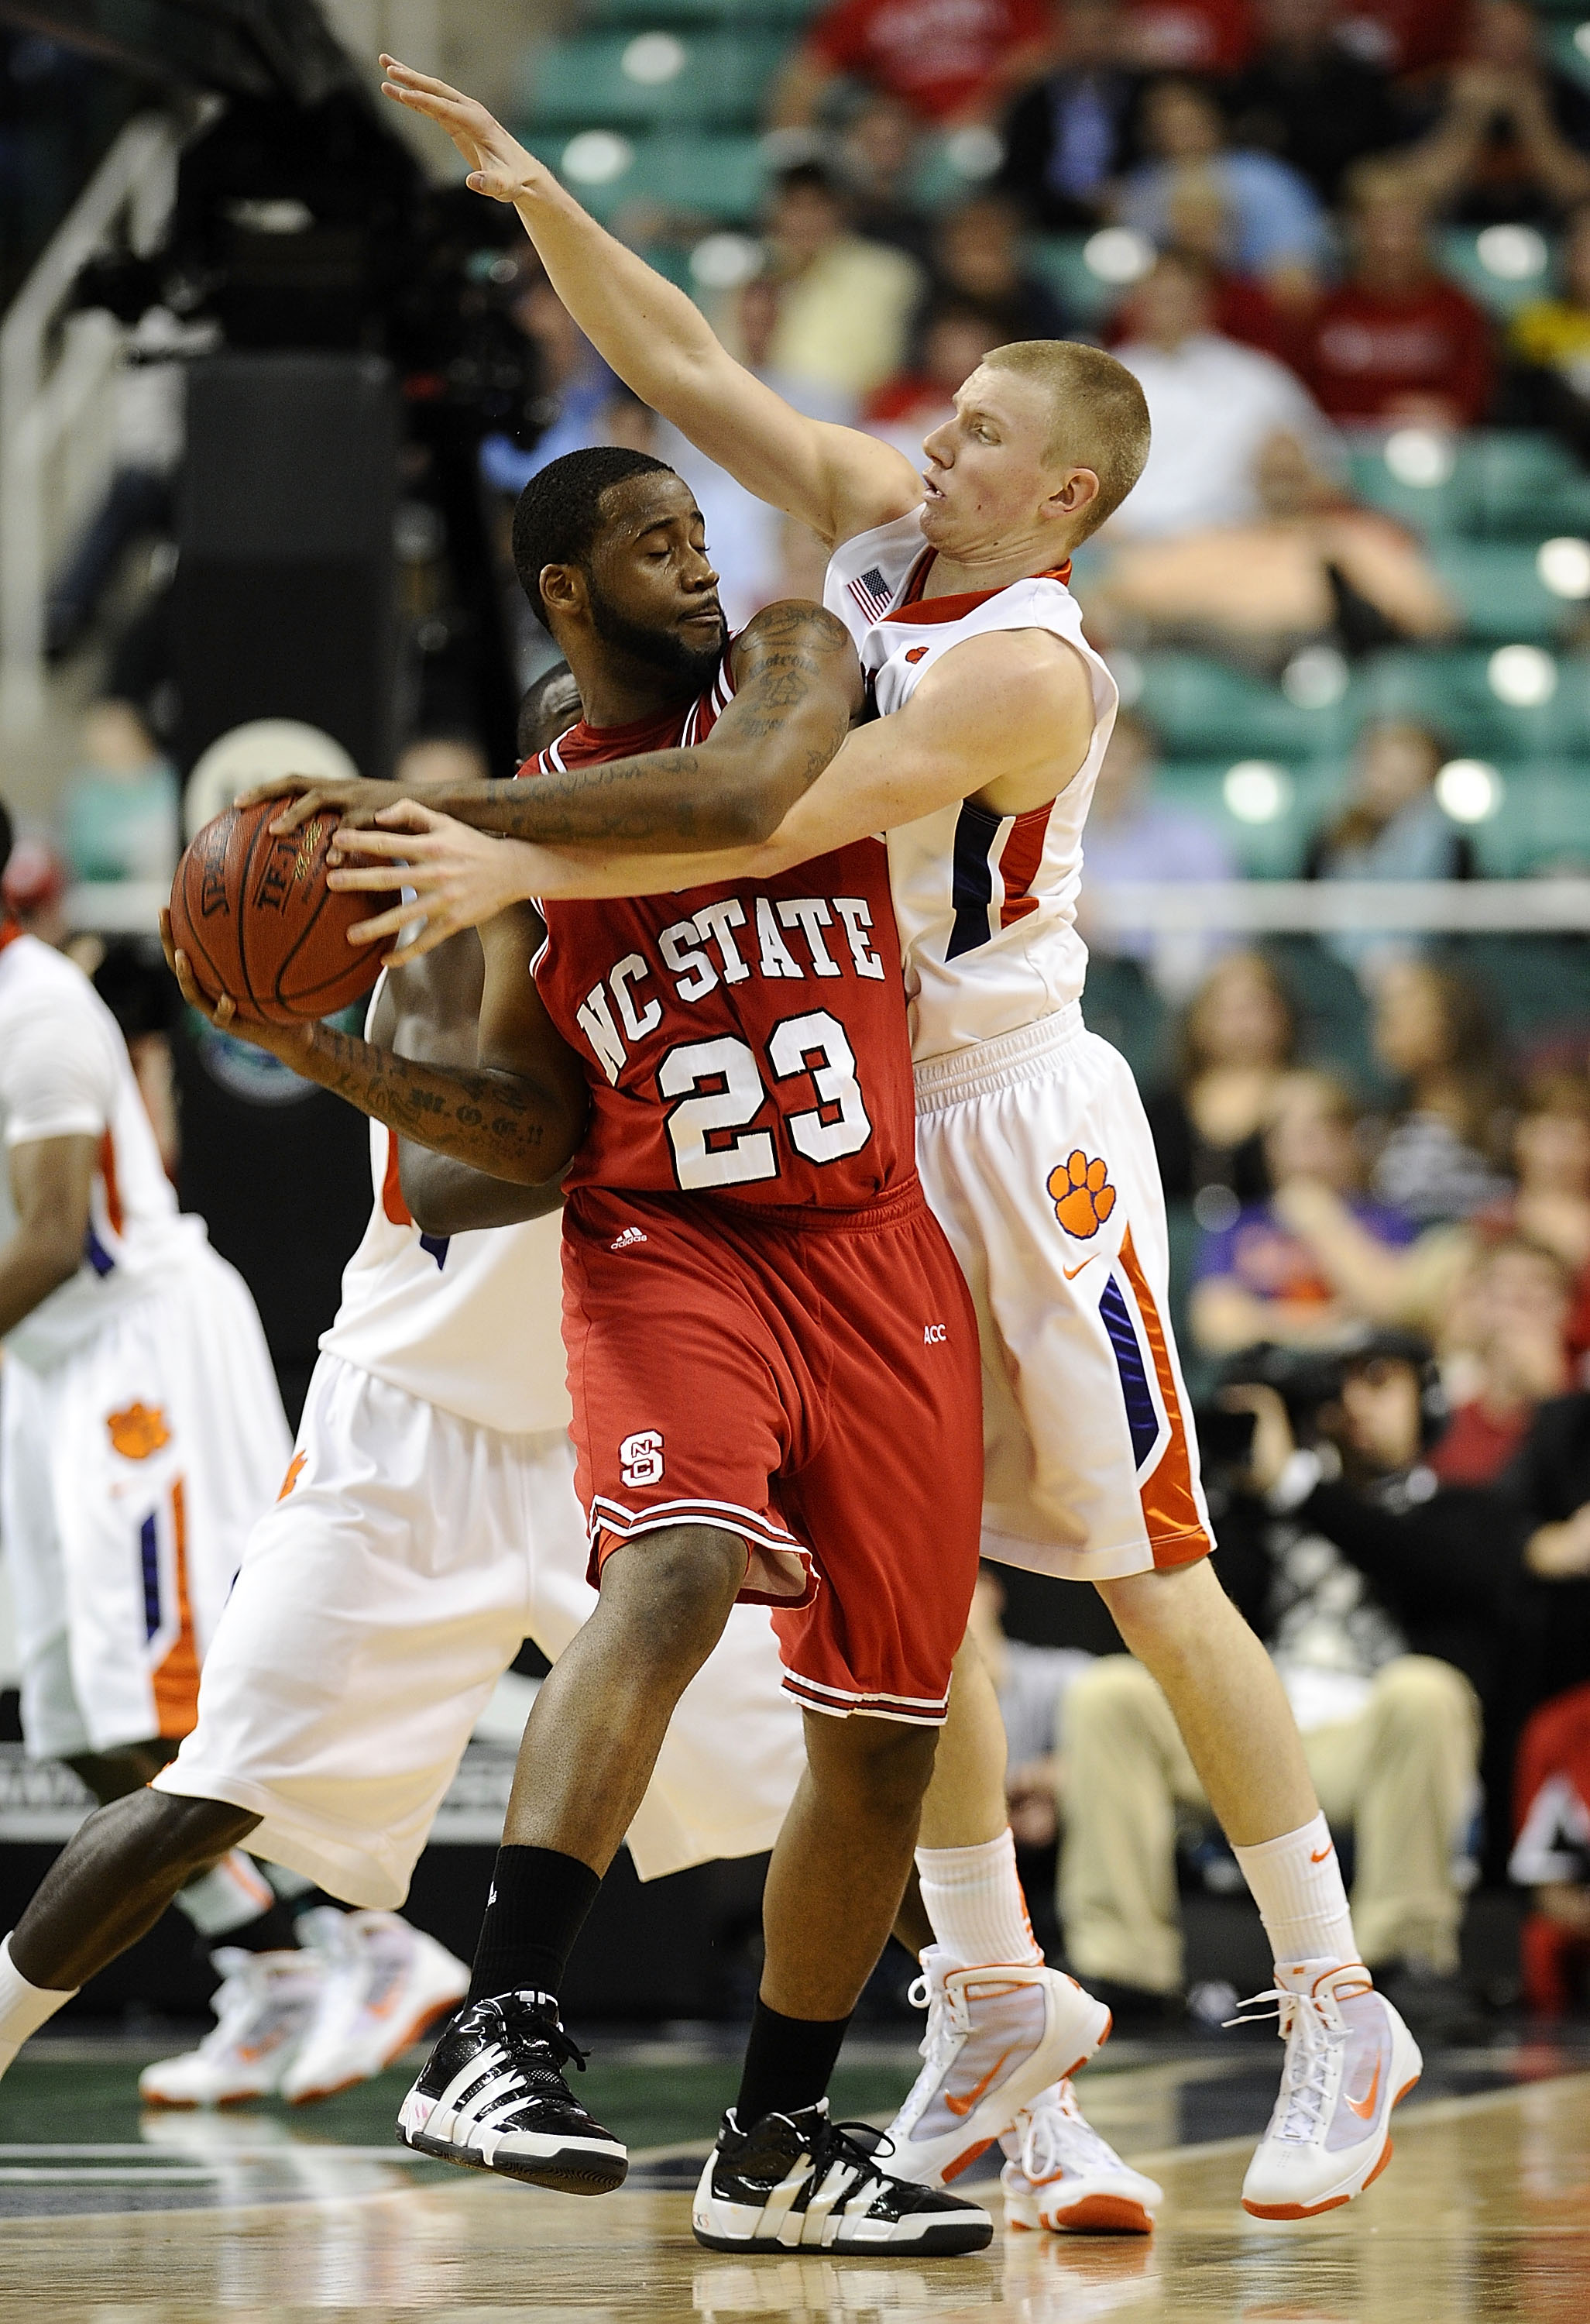 GREENSBORO, NC - MARCH 11:  Tanner Smith #5 of the Clemson Tigers guards Tracy Smith #23 of the North Carolina State Wolfpack in their first-round game in the 2010 ACC Men's Basketball Tournament at the Greensboro Coliseum on March 11, 2010 in Greensboro,